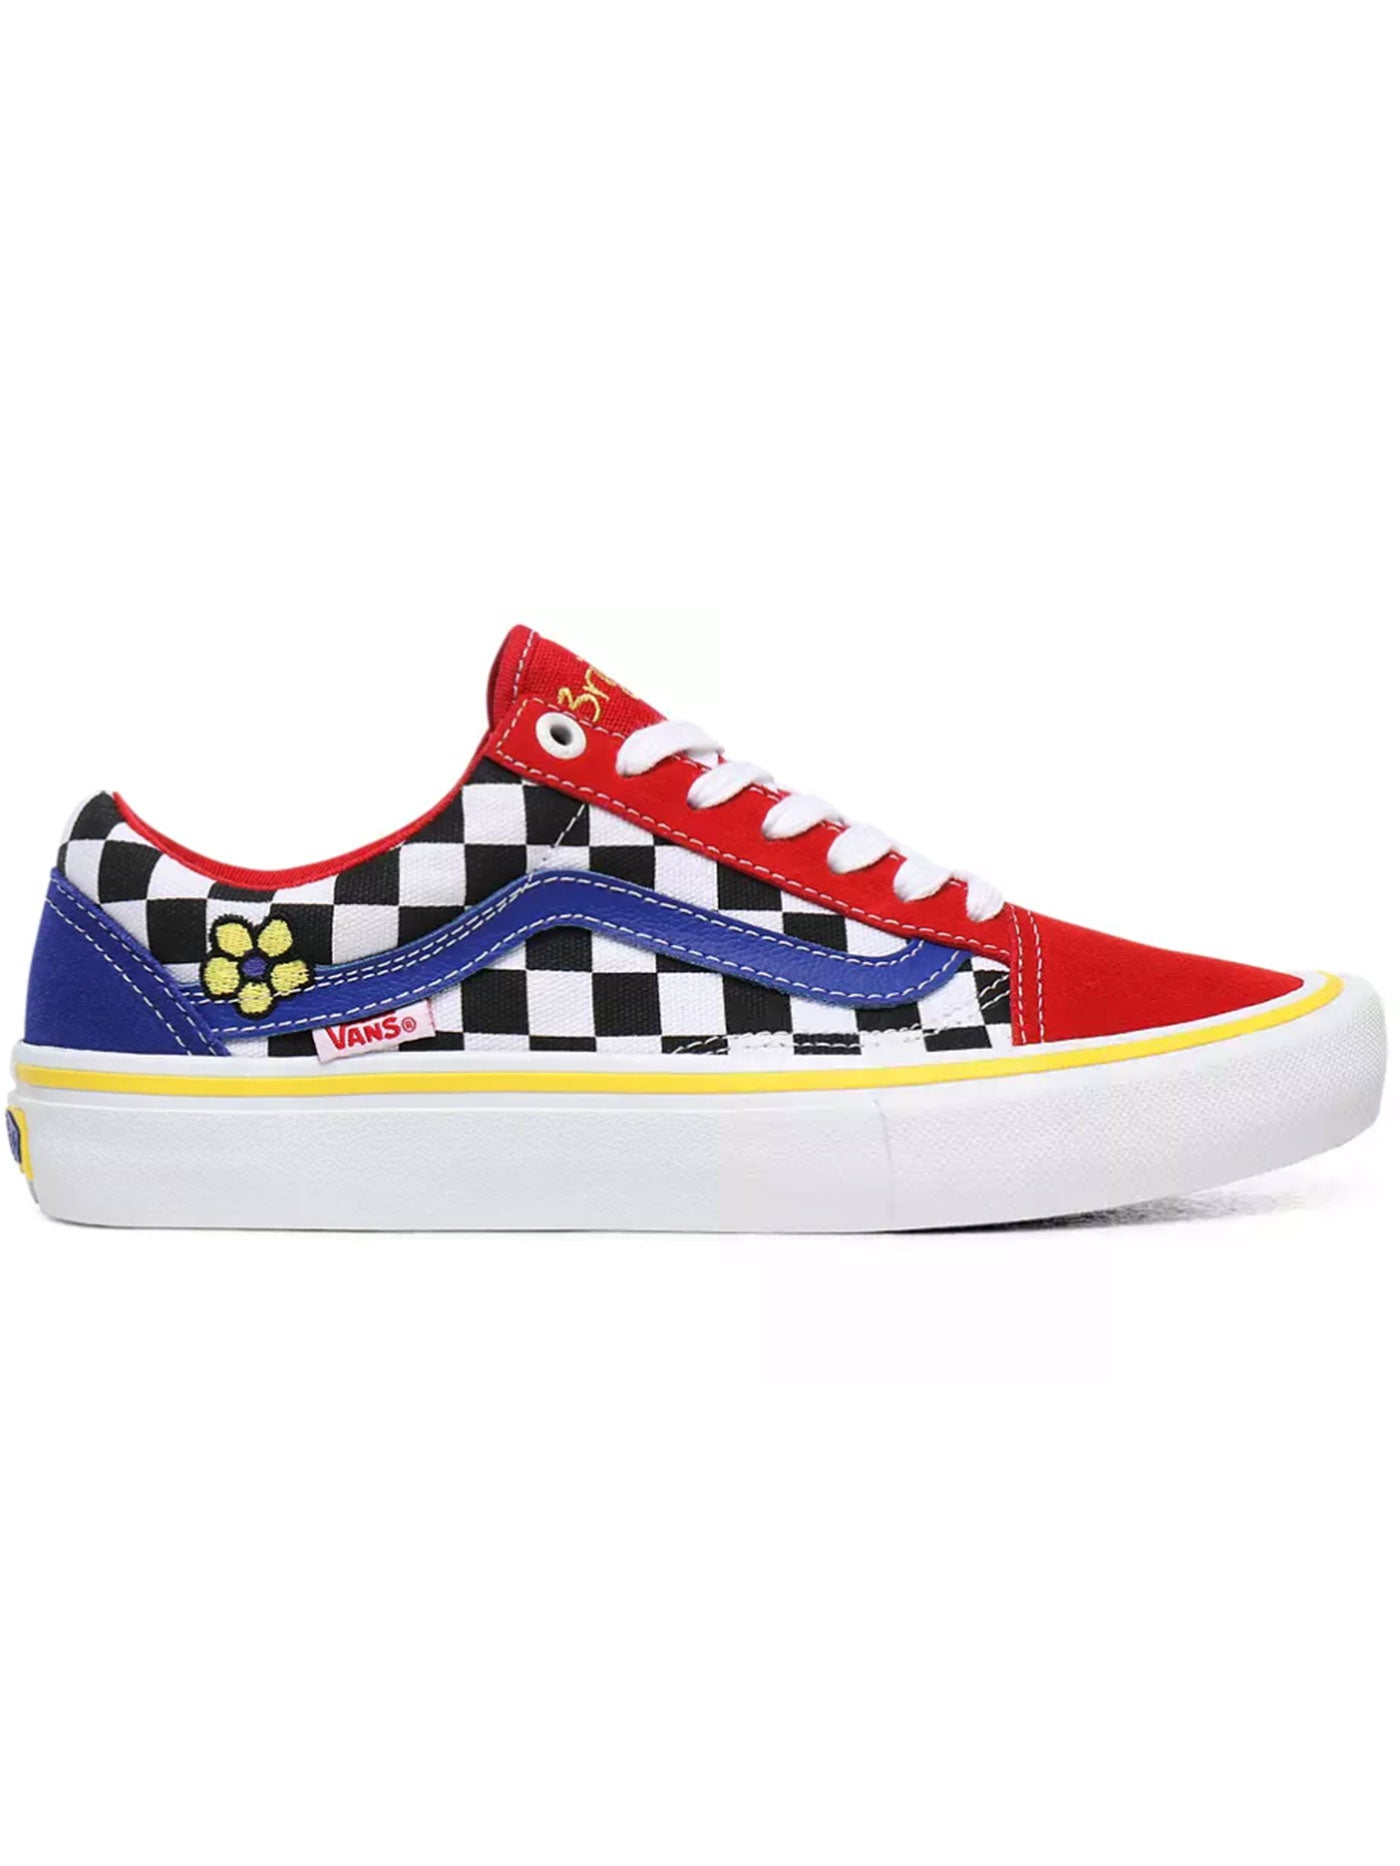 RED/CHECKER/BLUE (W89)